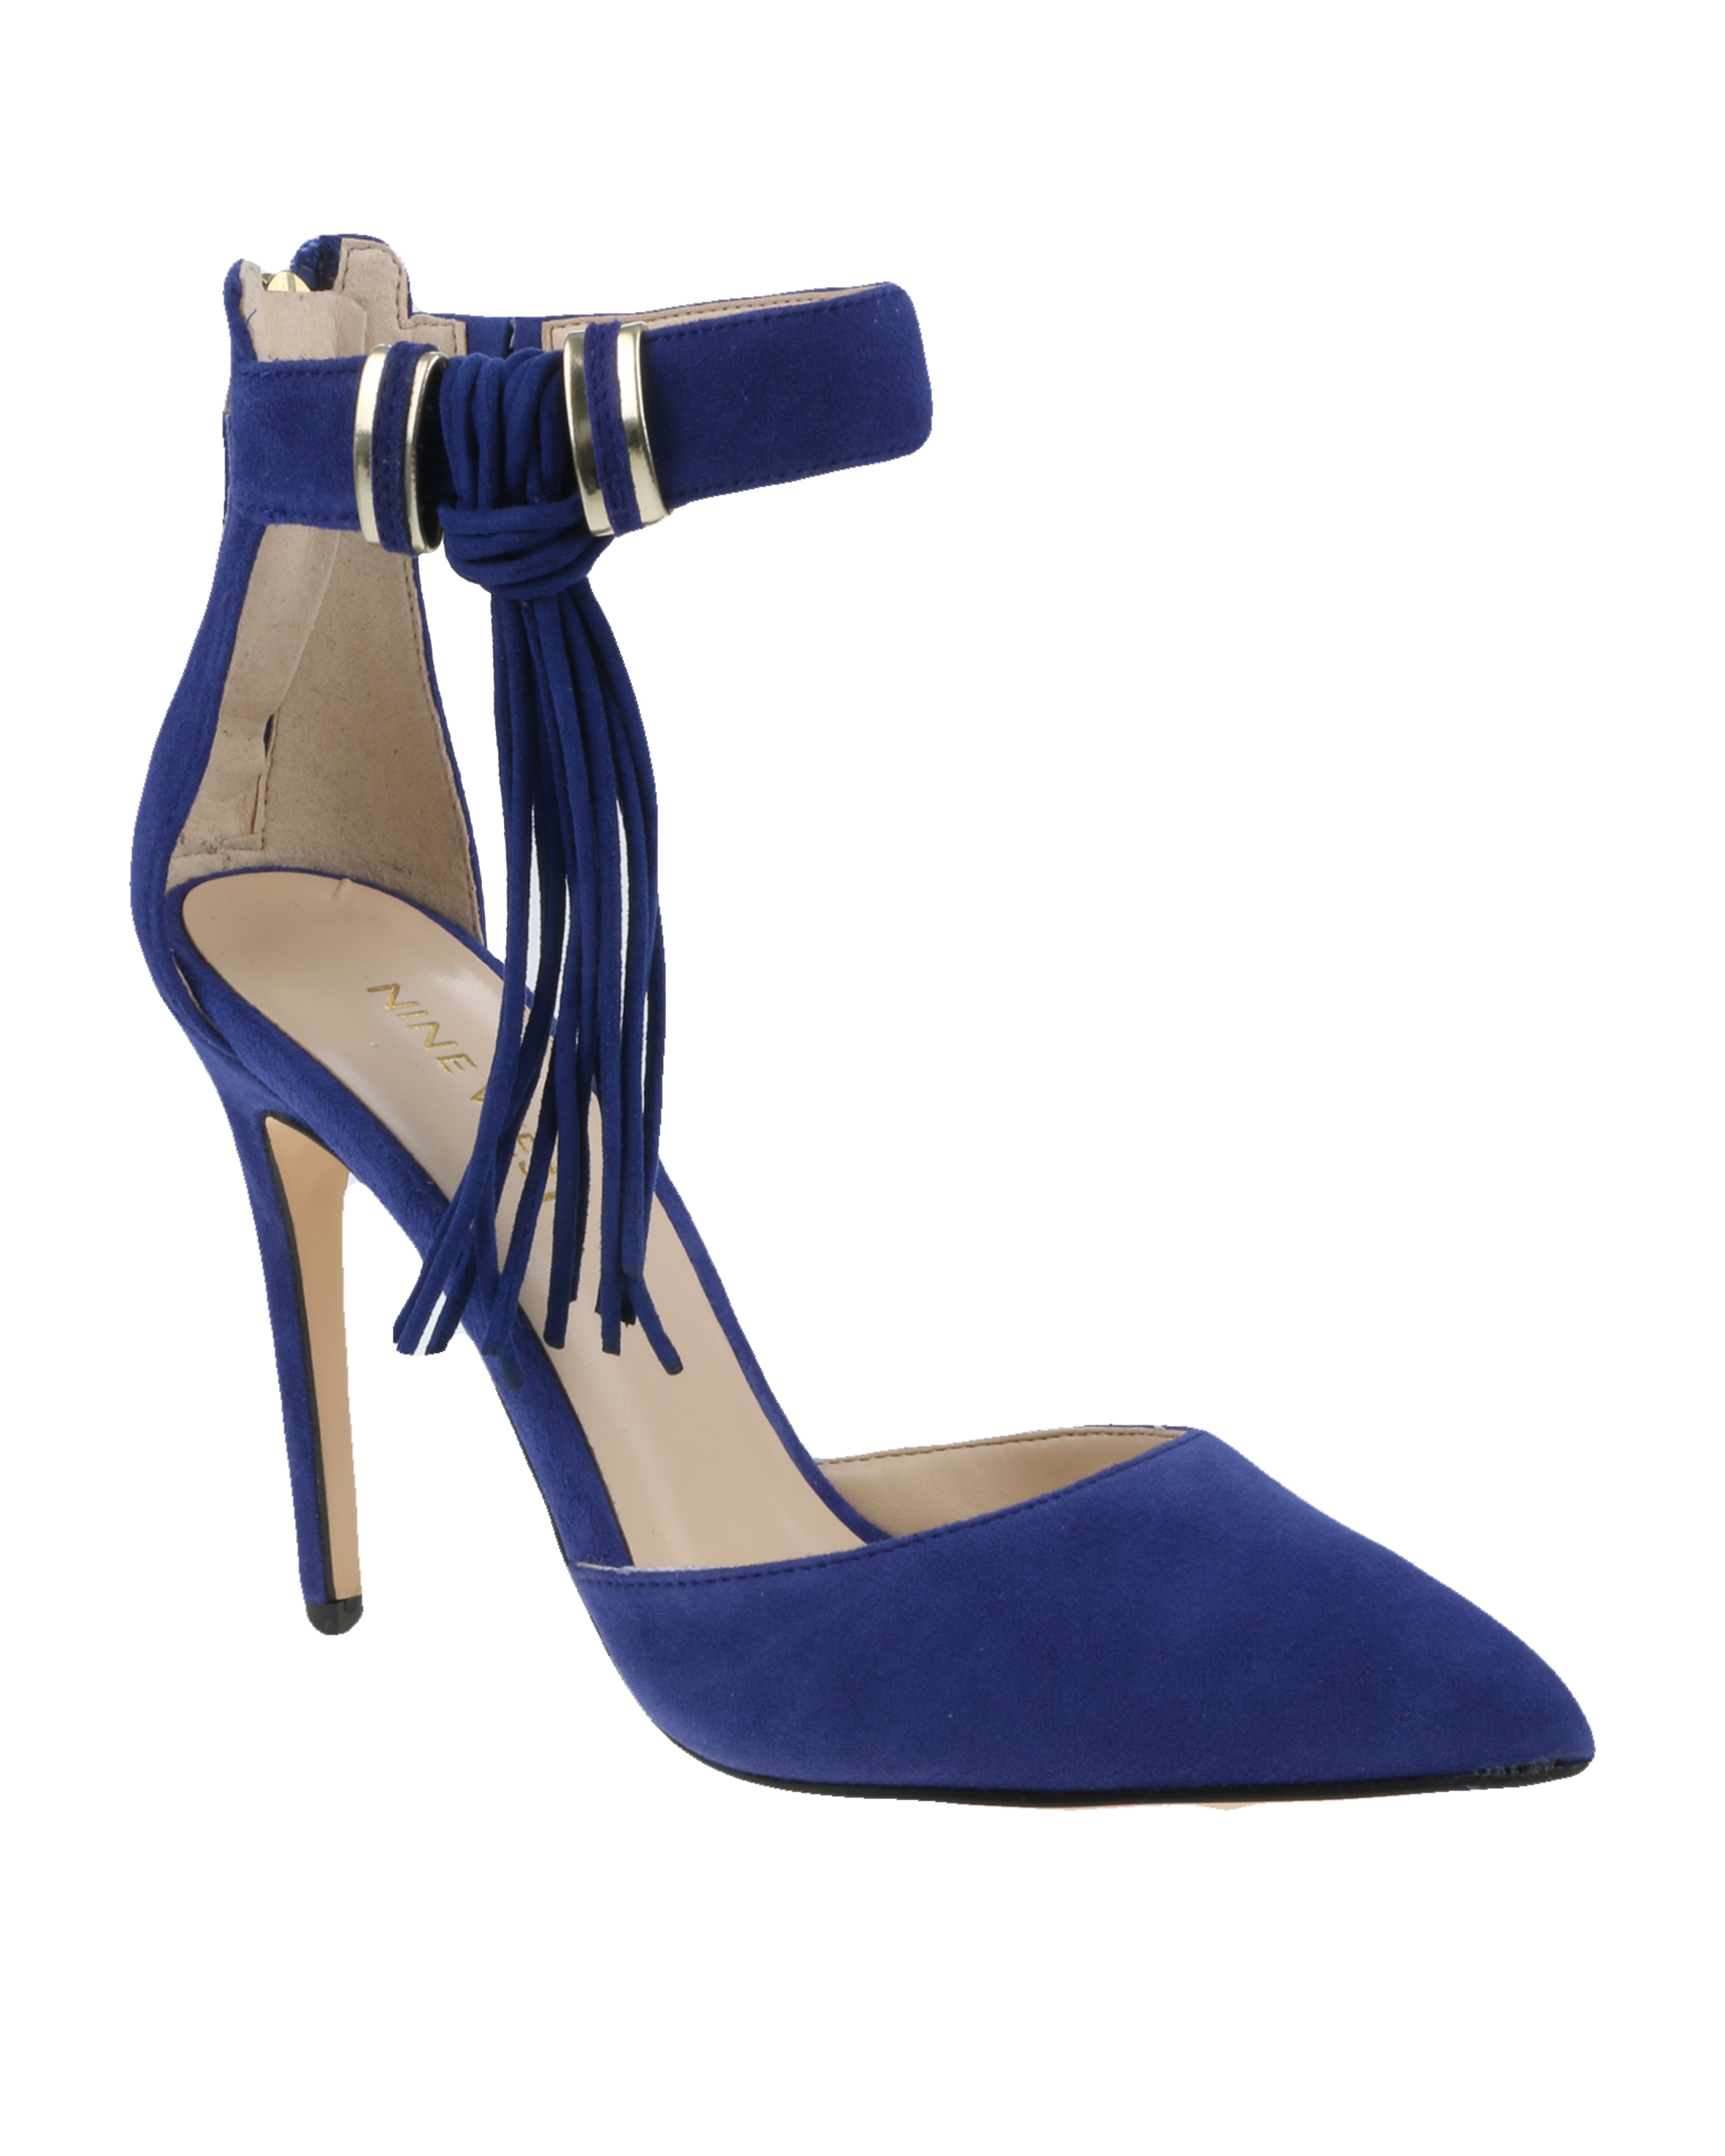 Nine West is now available on Zando! {PRESS RELEASE}